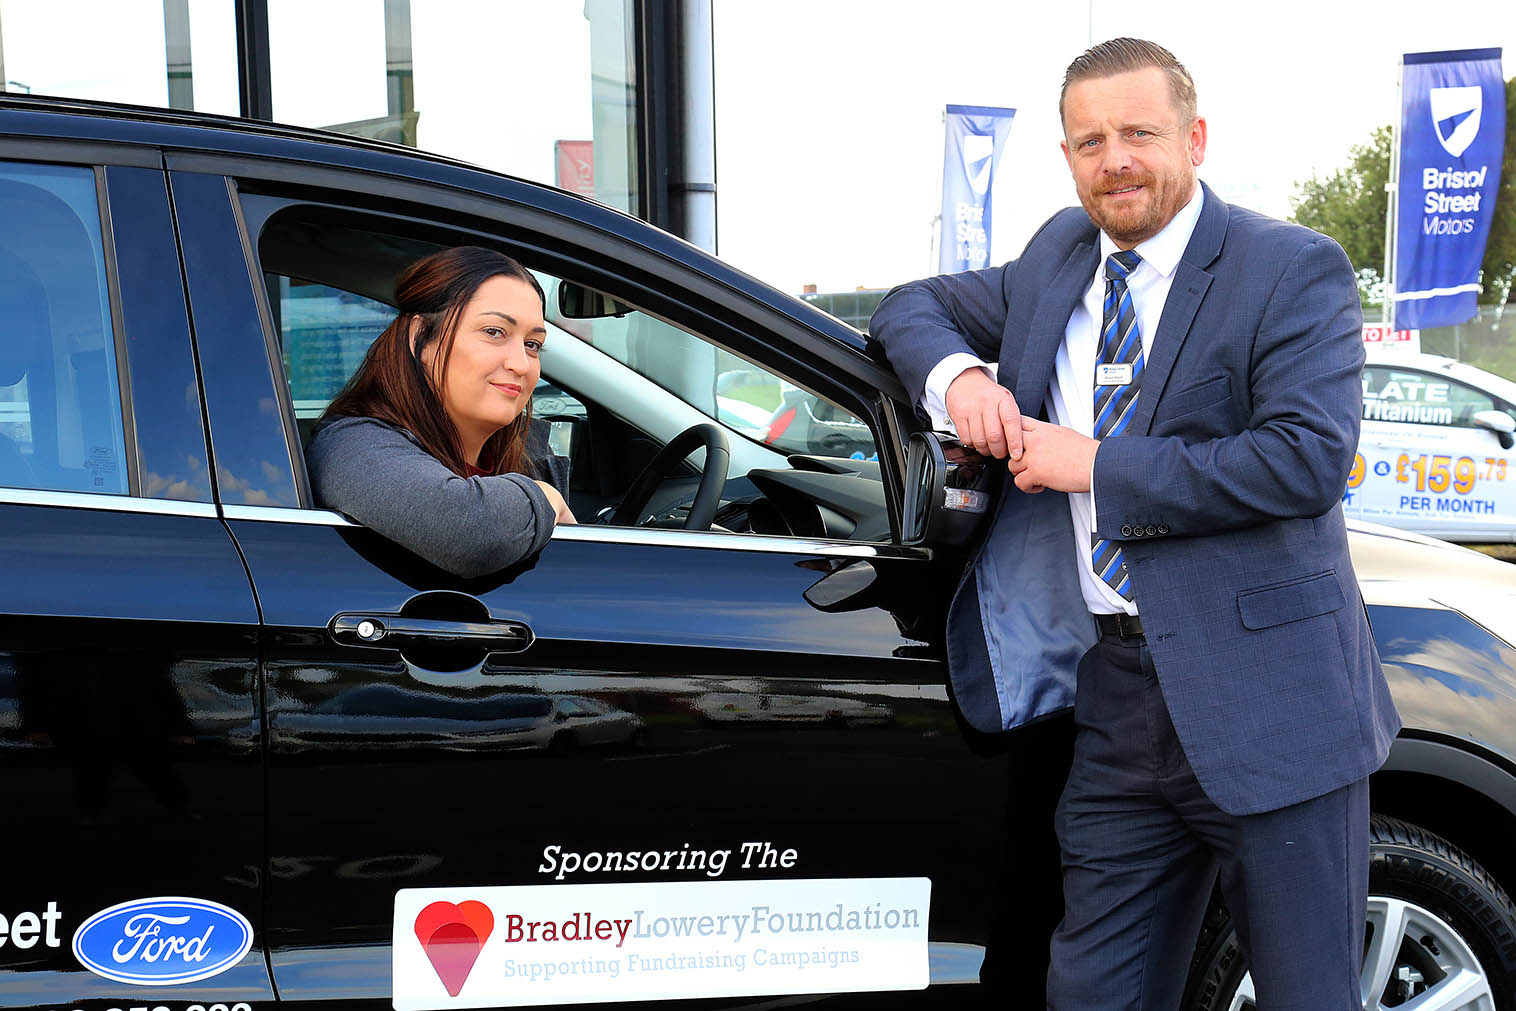 Hartlepool Ford helps the Bradley Lowery Foundation